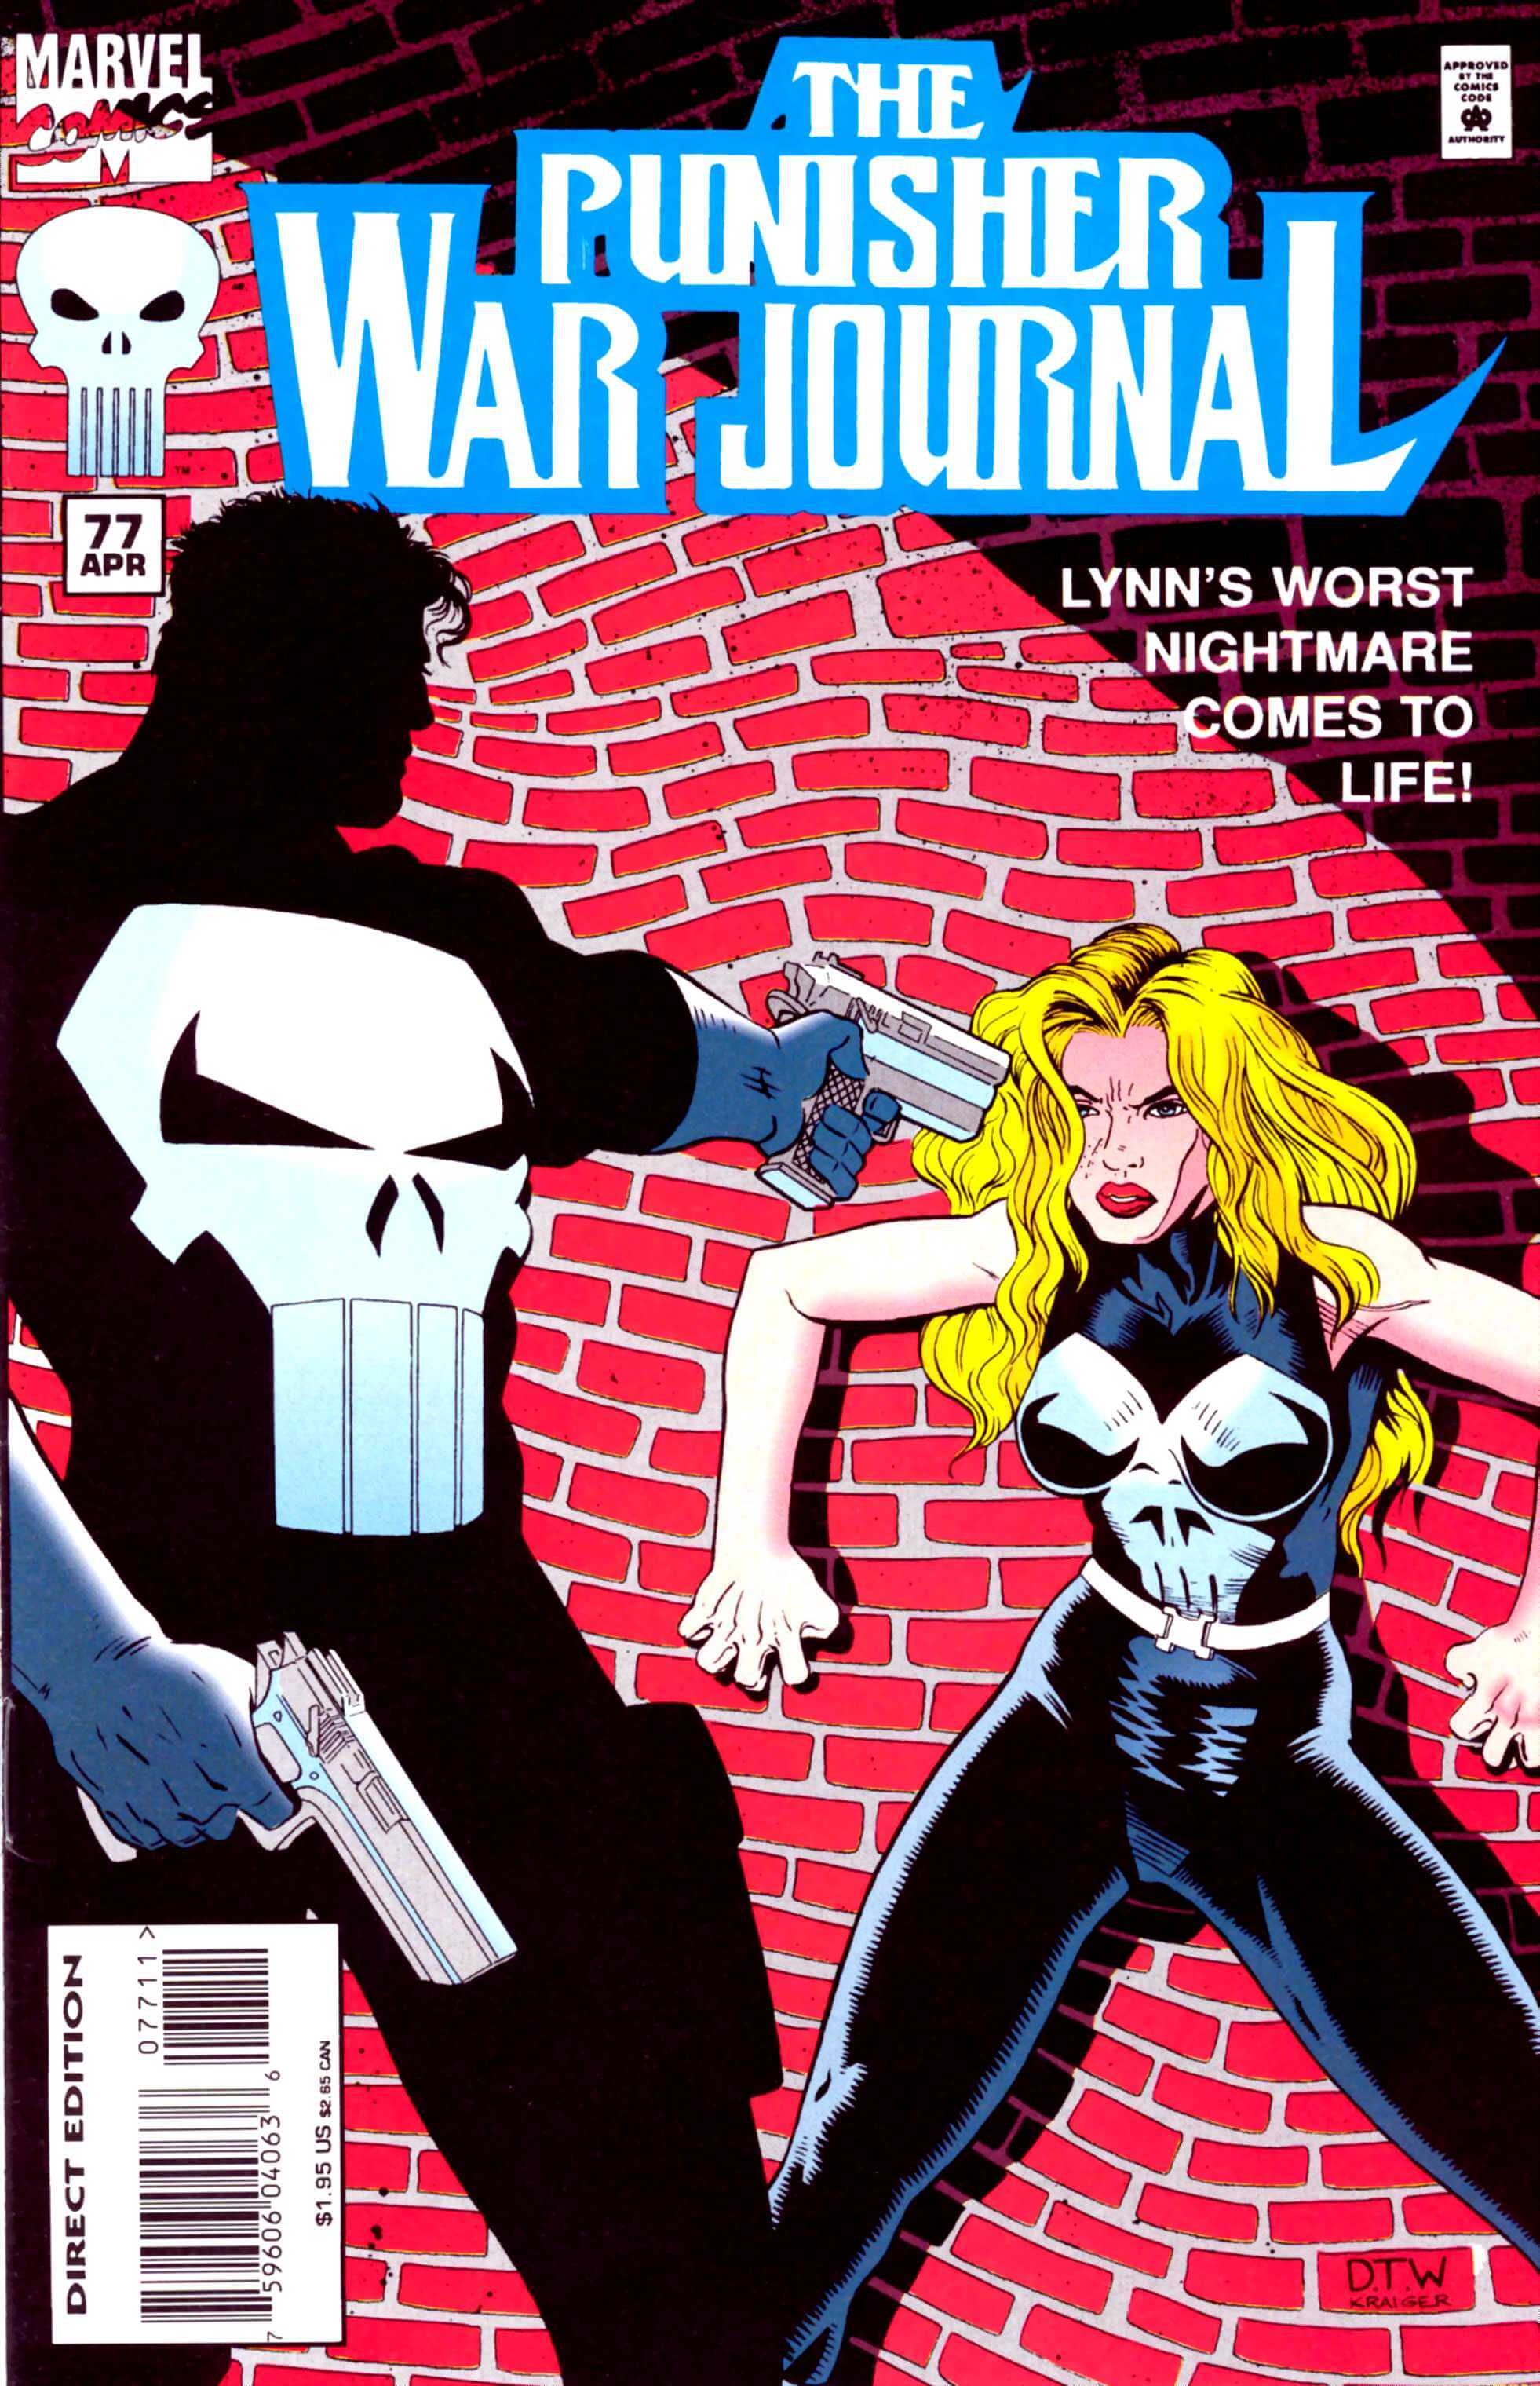 Punisher War Journal Vol 1 #77